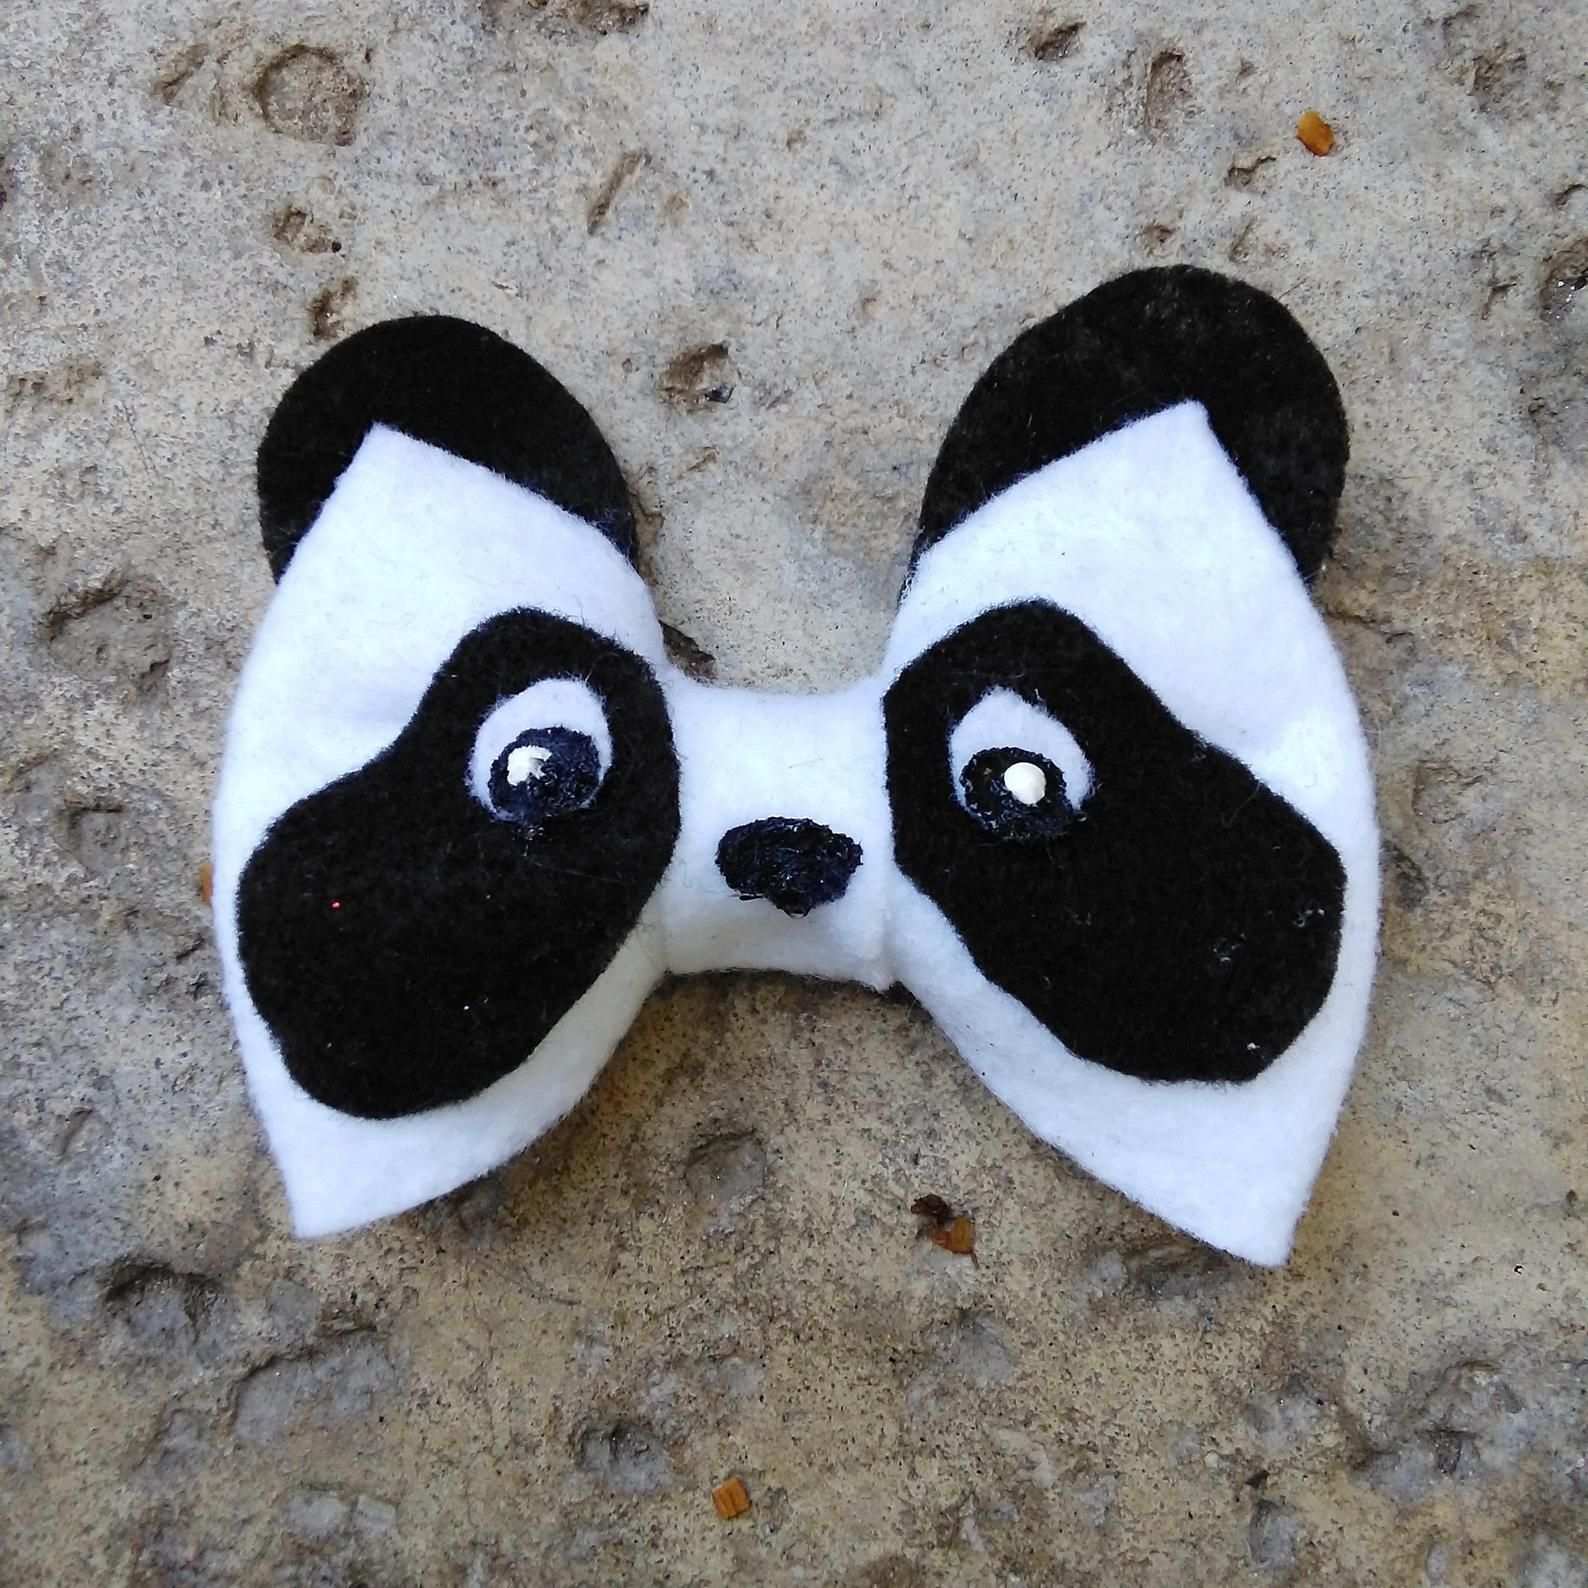 Panda Hair Bow, Animal Bows, Hair Clip, Clip On Bow Tie, Teen Bows, Cute, Handmade Hair Bows, Girls Bows, Black And White, Zoo, Bear #hairbows